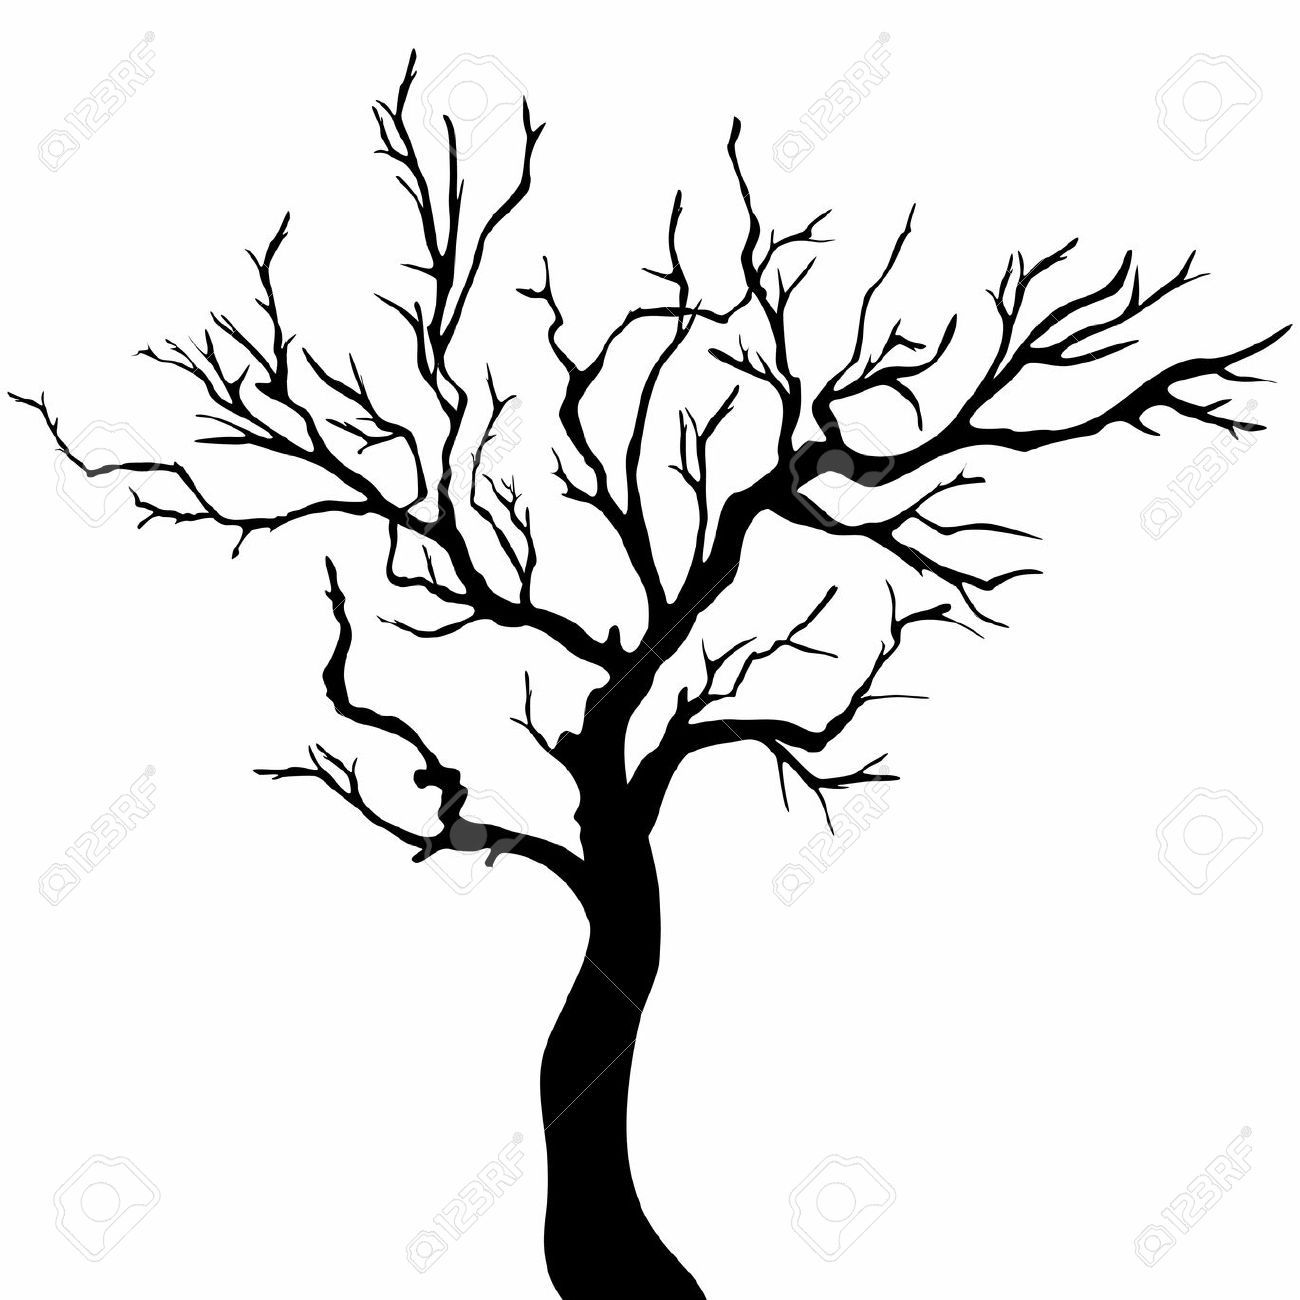 Tree silhouettes - Bare Apple Tree PNG